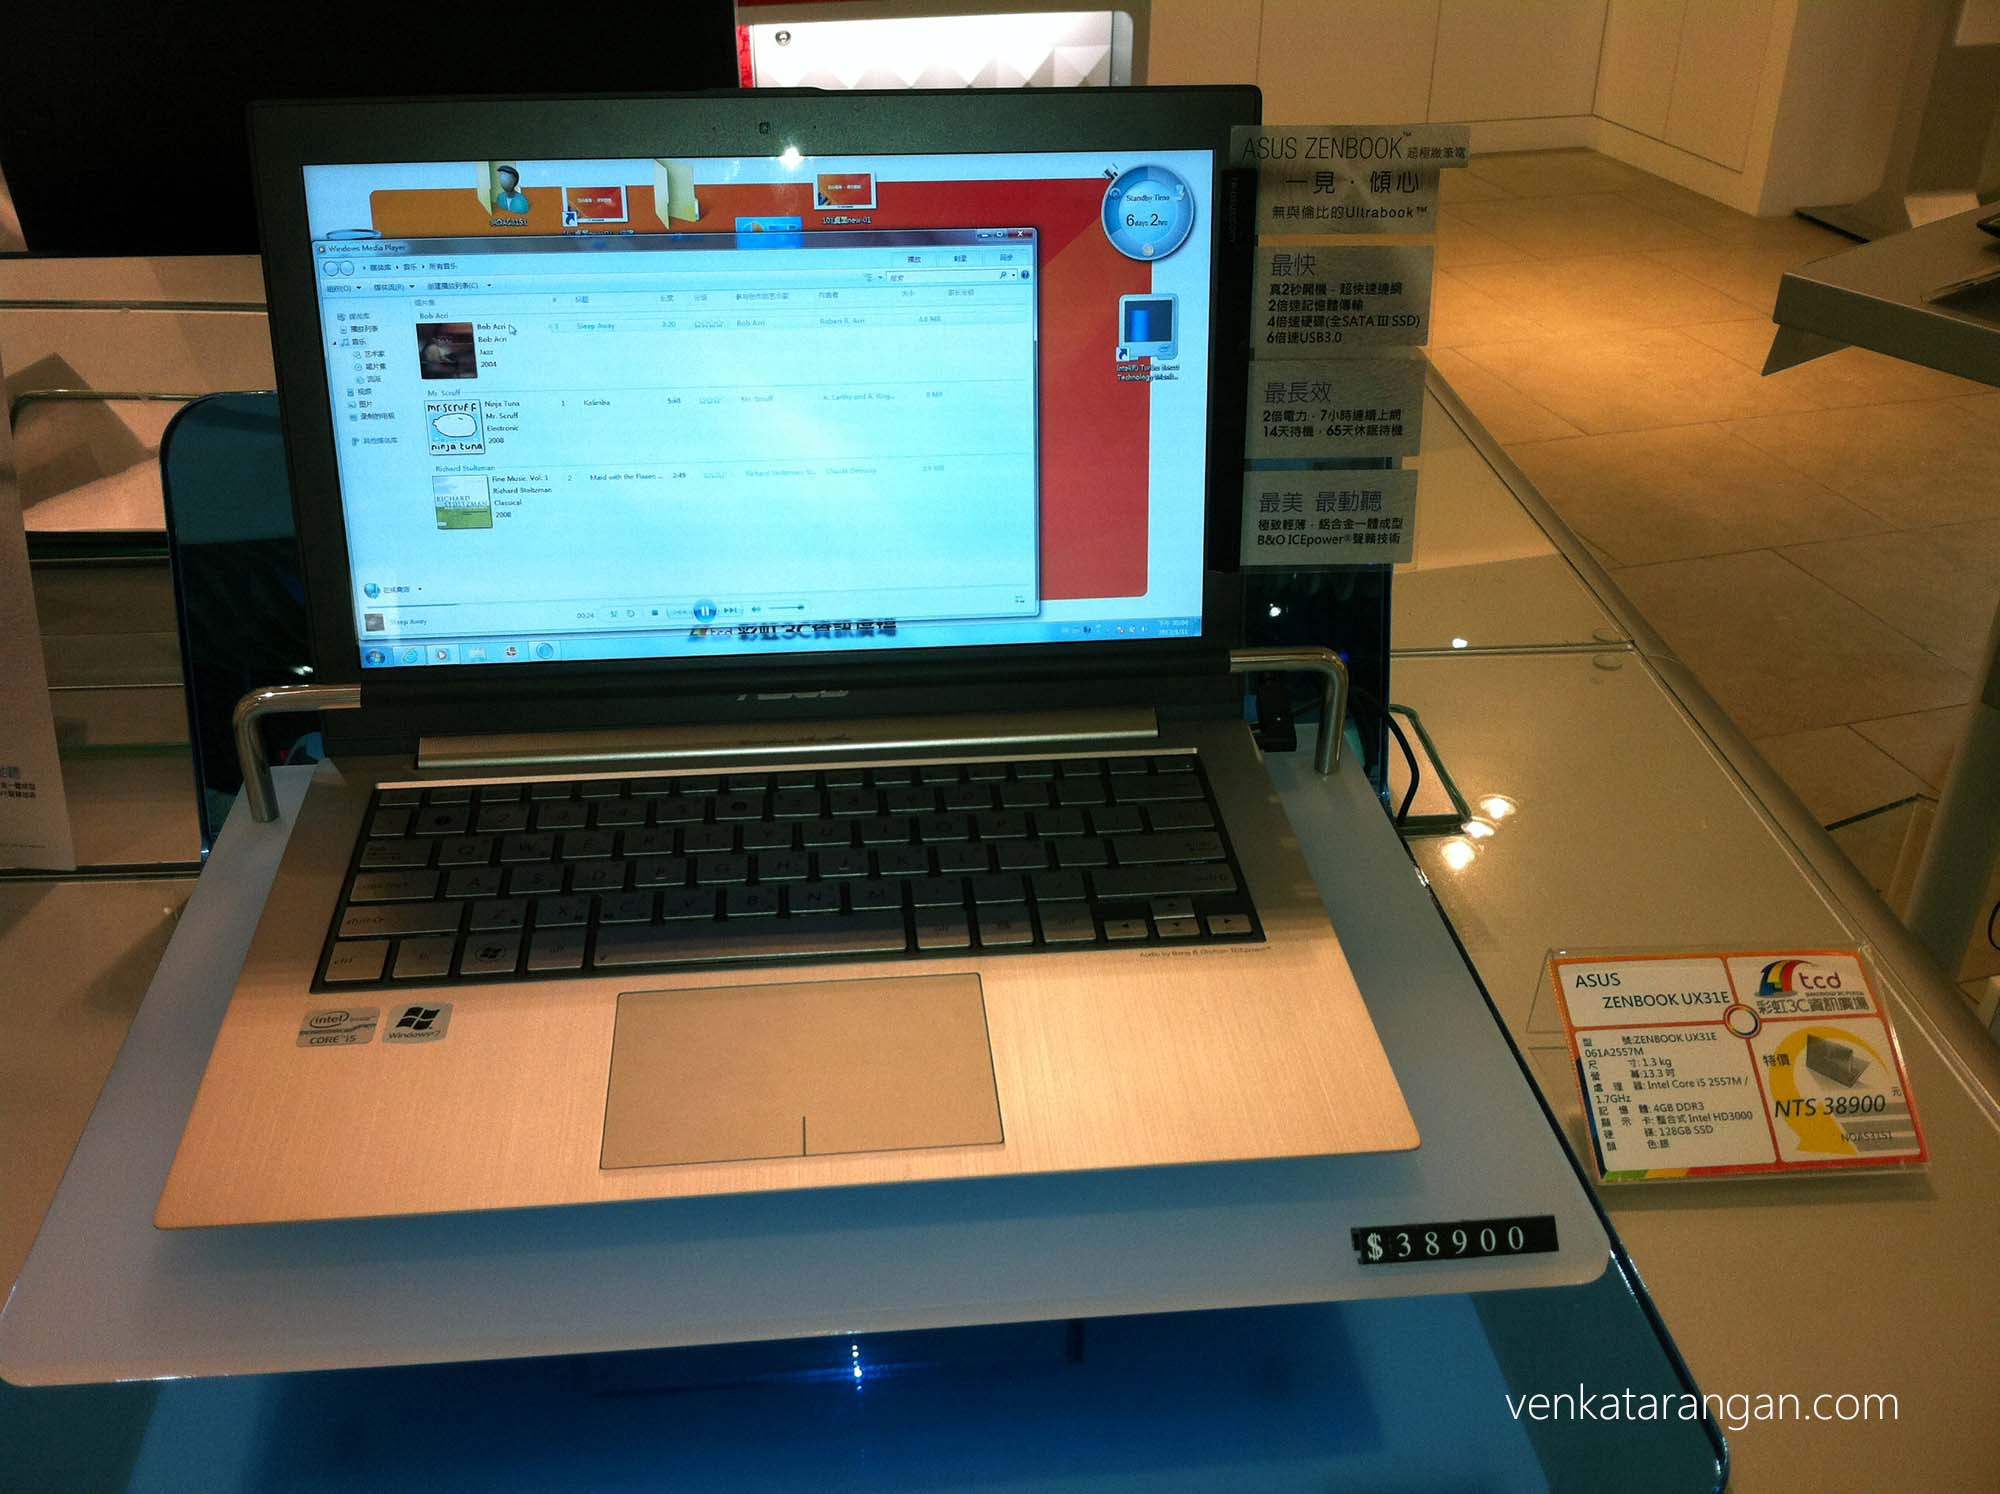 The above ultrabook ASUS Zenbook X31E costs NTD 38,900 ~ USD 1313 seems to be expensive than buying it in the USA